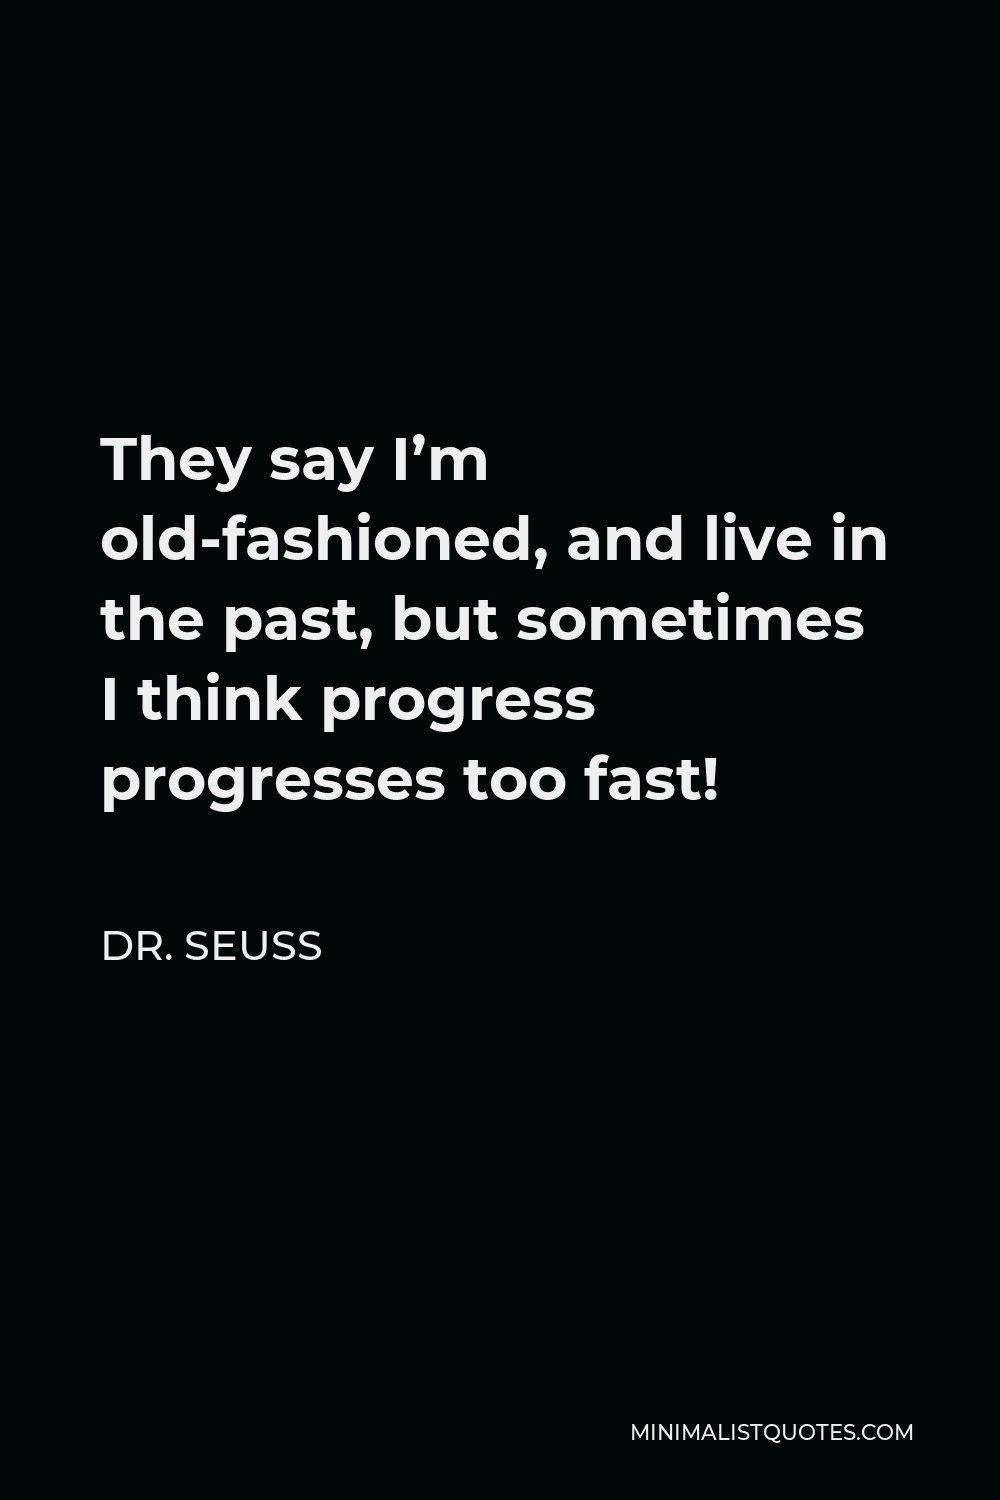 Dr. Seuss Quote - They say I'm old-fashioned, and live in the past, but sometimes I think progress progresses too fast!